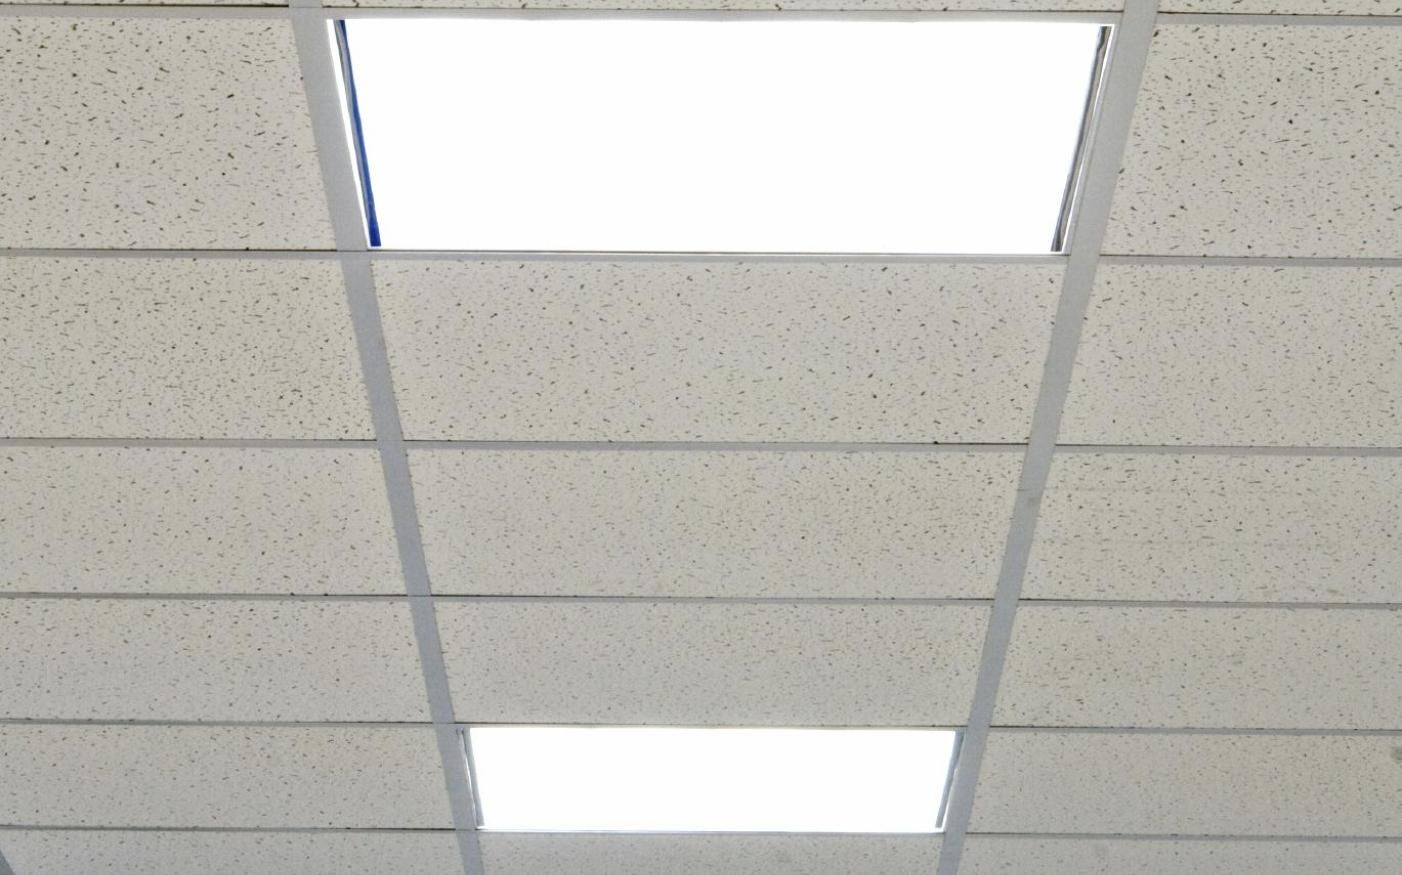 Office ceiling tiles sizes httpcreativechairsandtables office ceiling tiles sizes dailygadgetfo Image collections